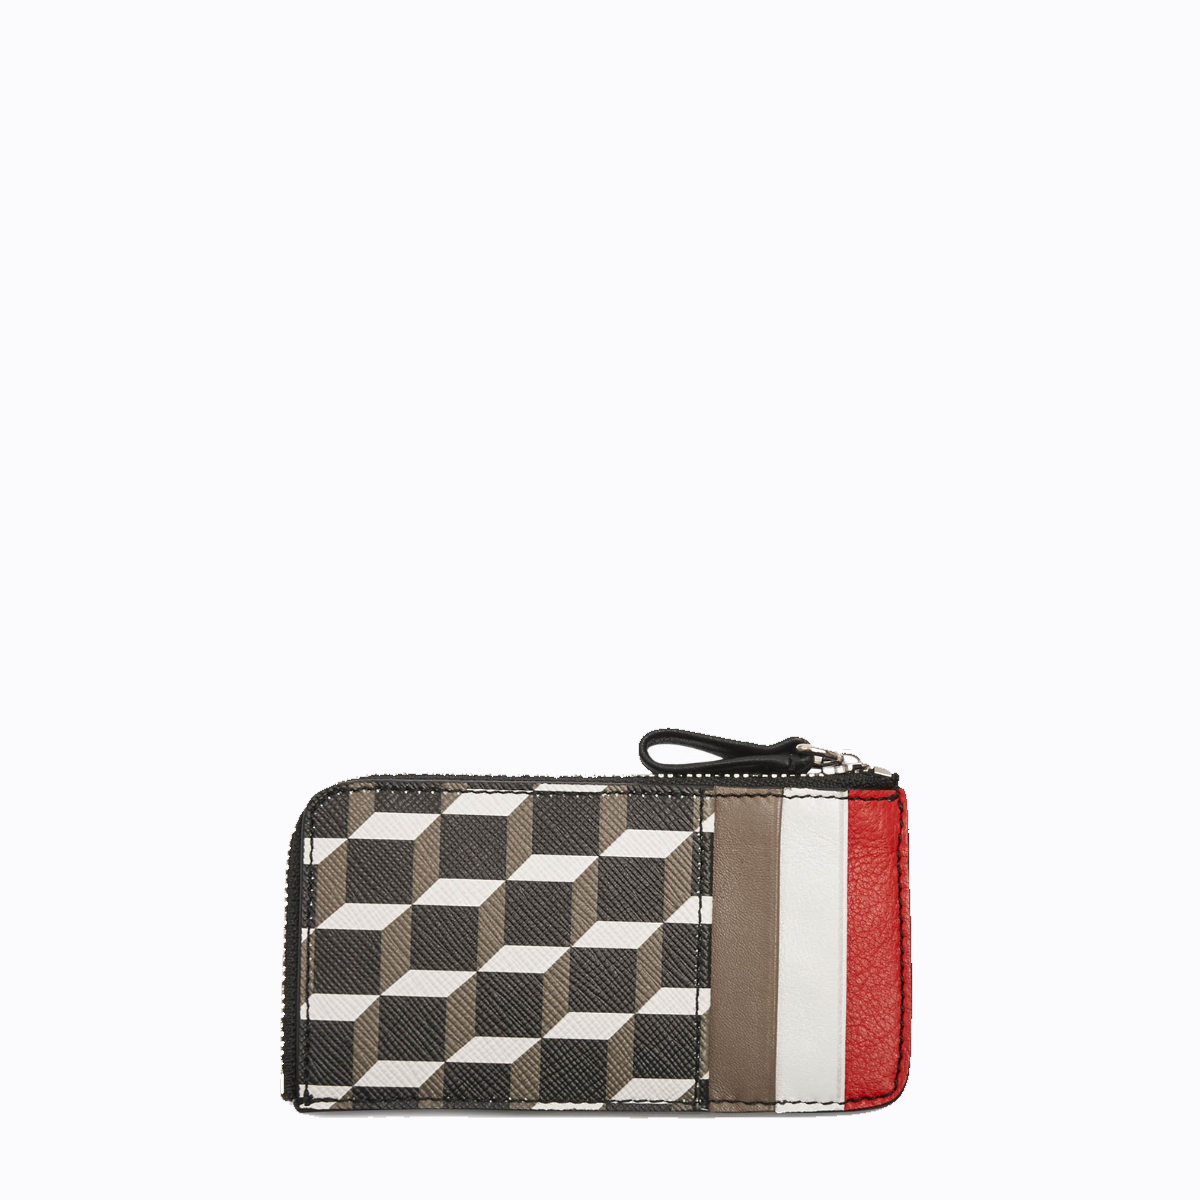 PIERRE HARDY CADE CASE BLACK RED